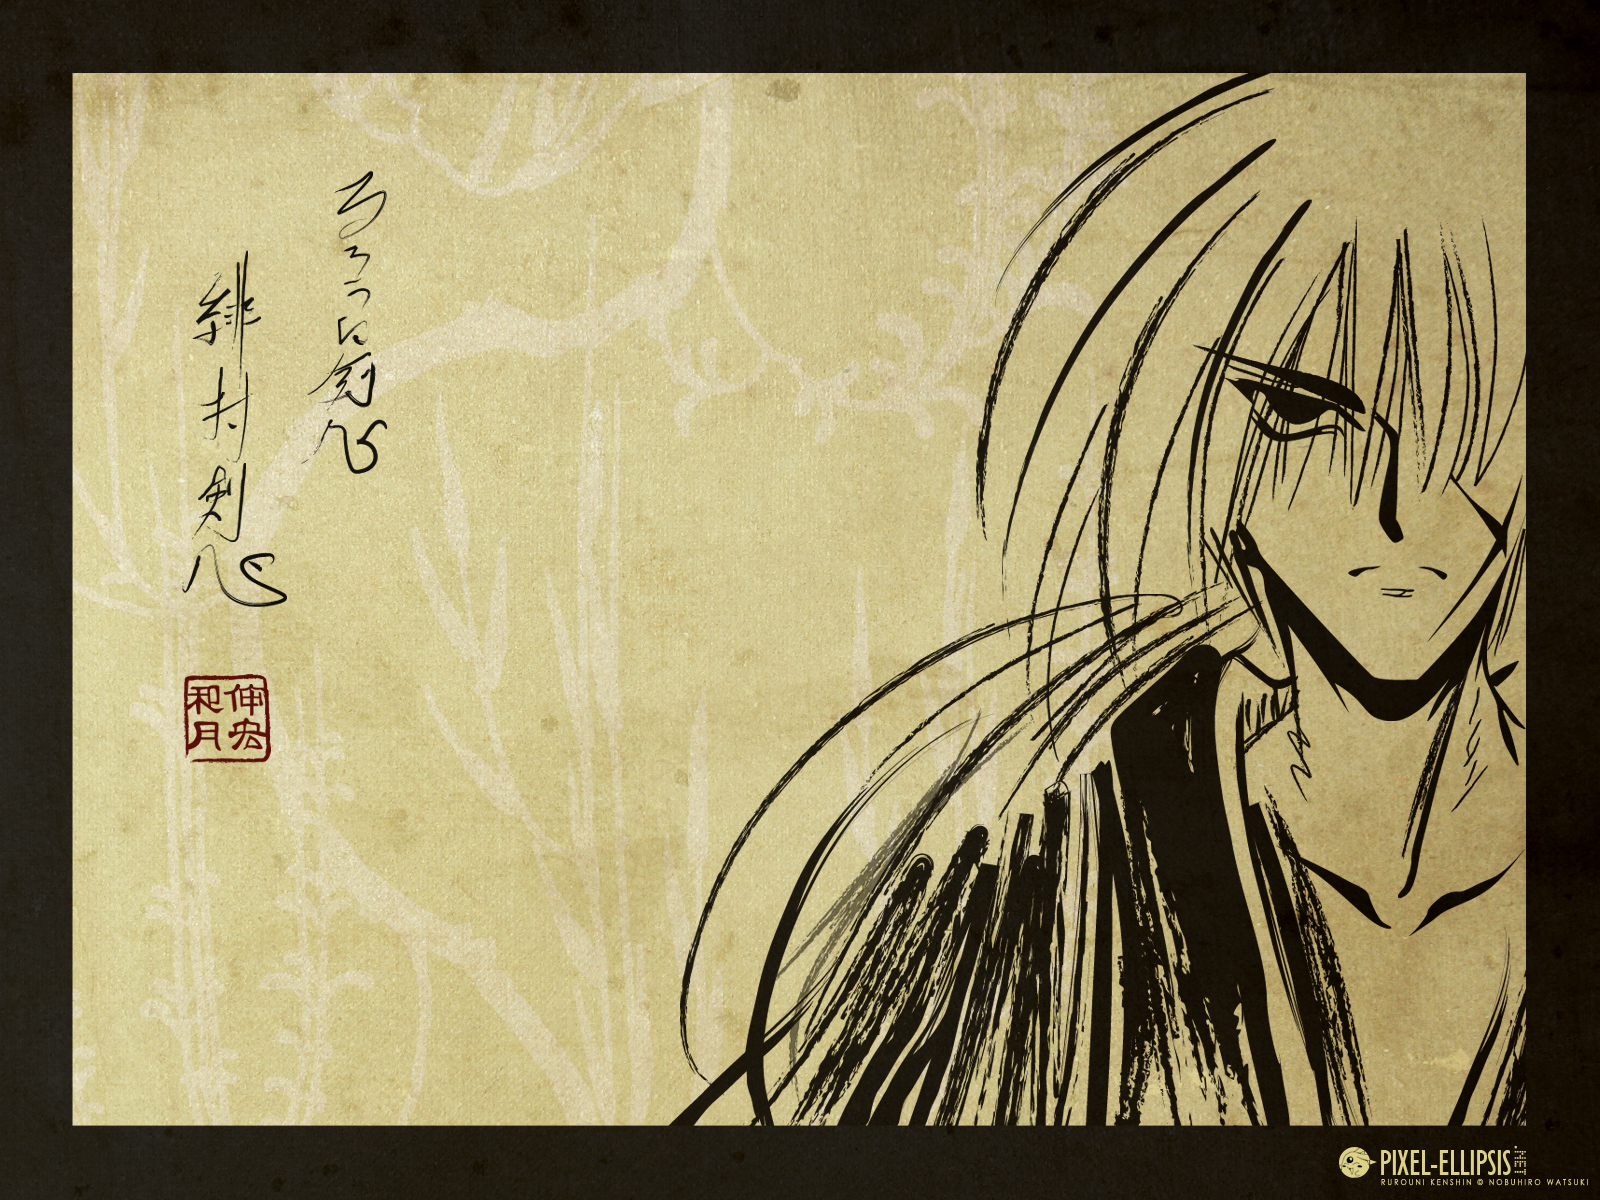 kenshin himura wallpaper - photo #22